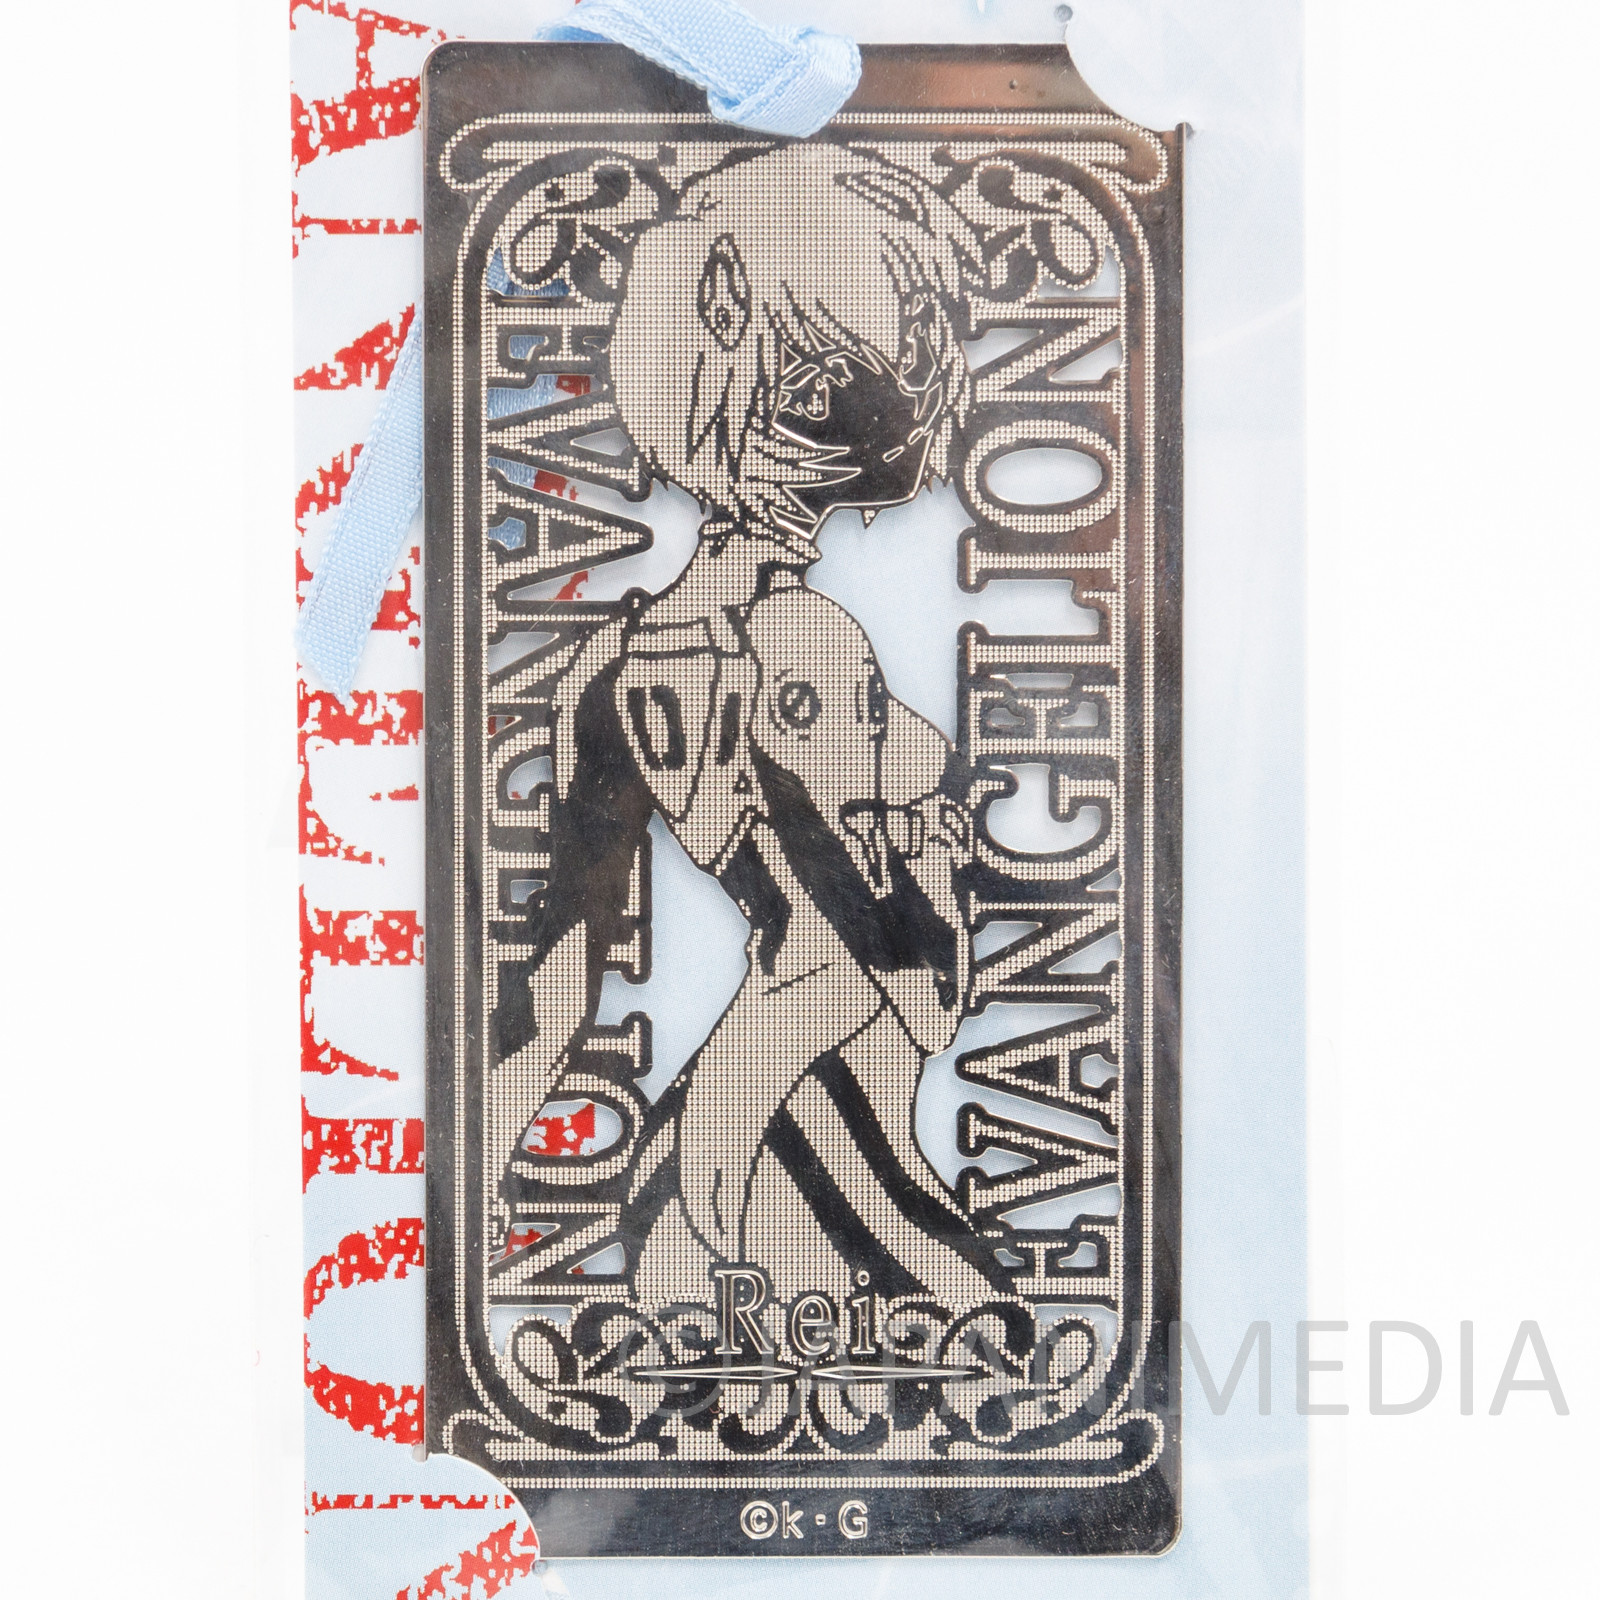 Retro RARE Evangelion Rei Ayanami Metal BookMarker JAPAN